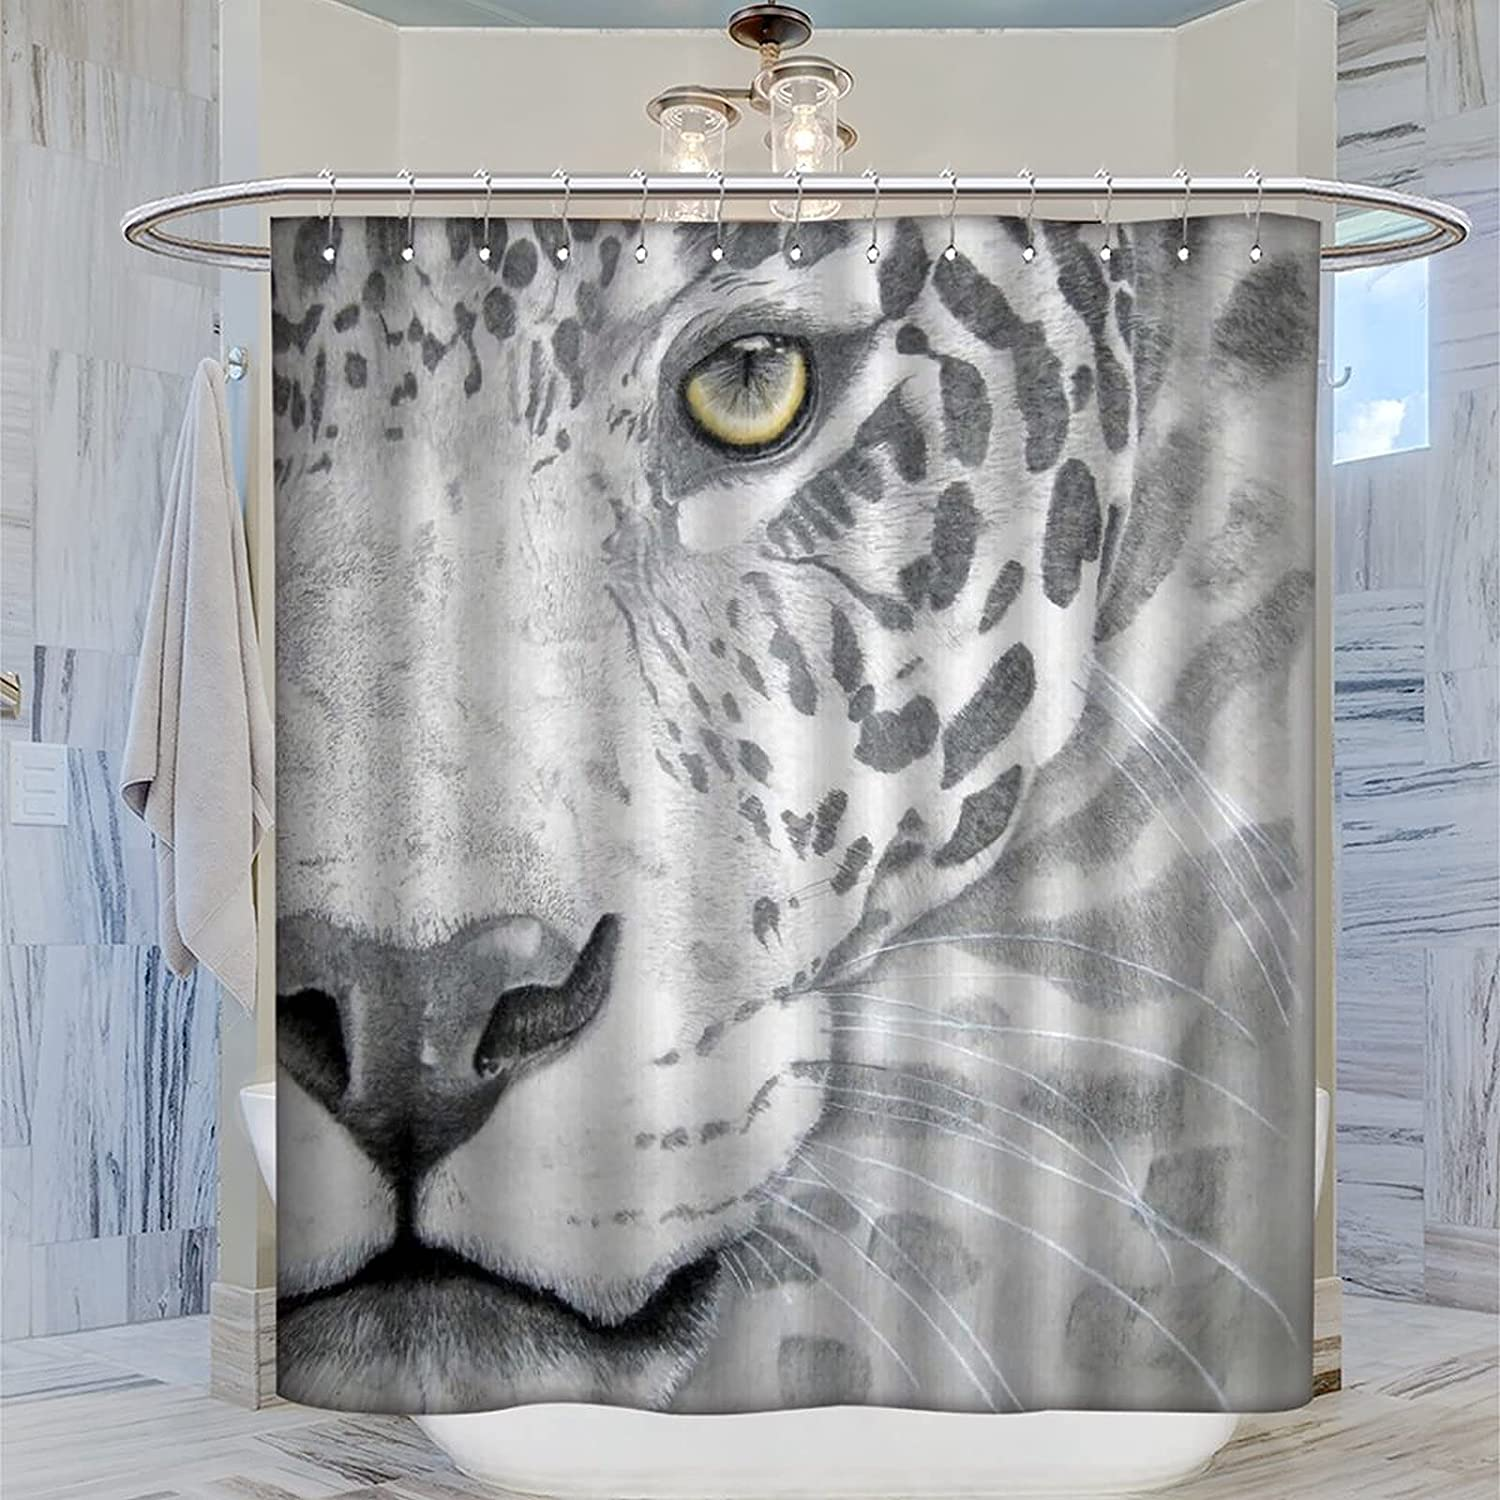 AOKIA Don't miss price the campaign Shower Curtain Black and Leopard Painting Show White Decor